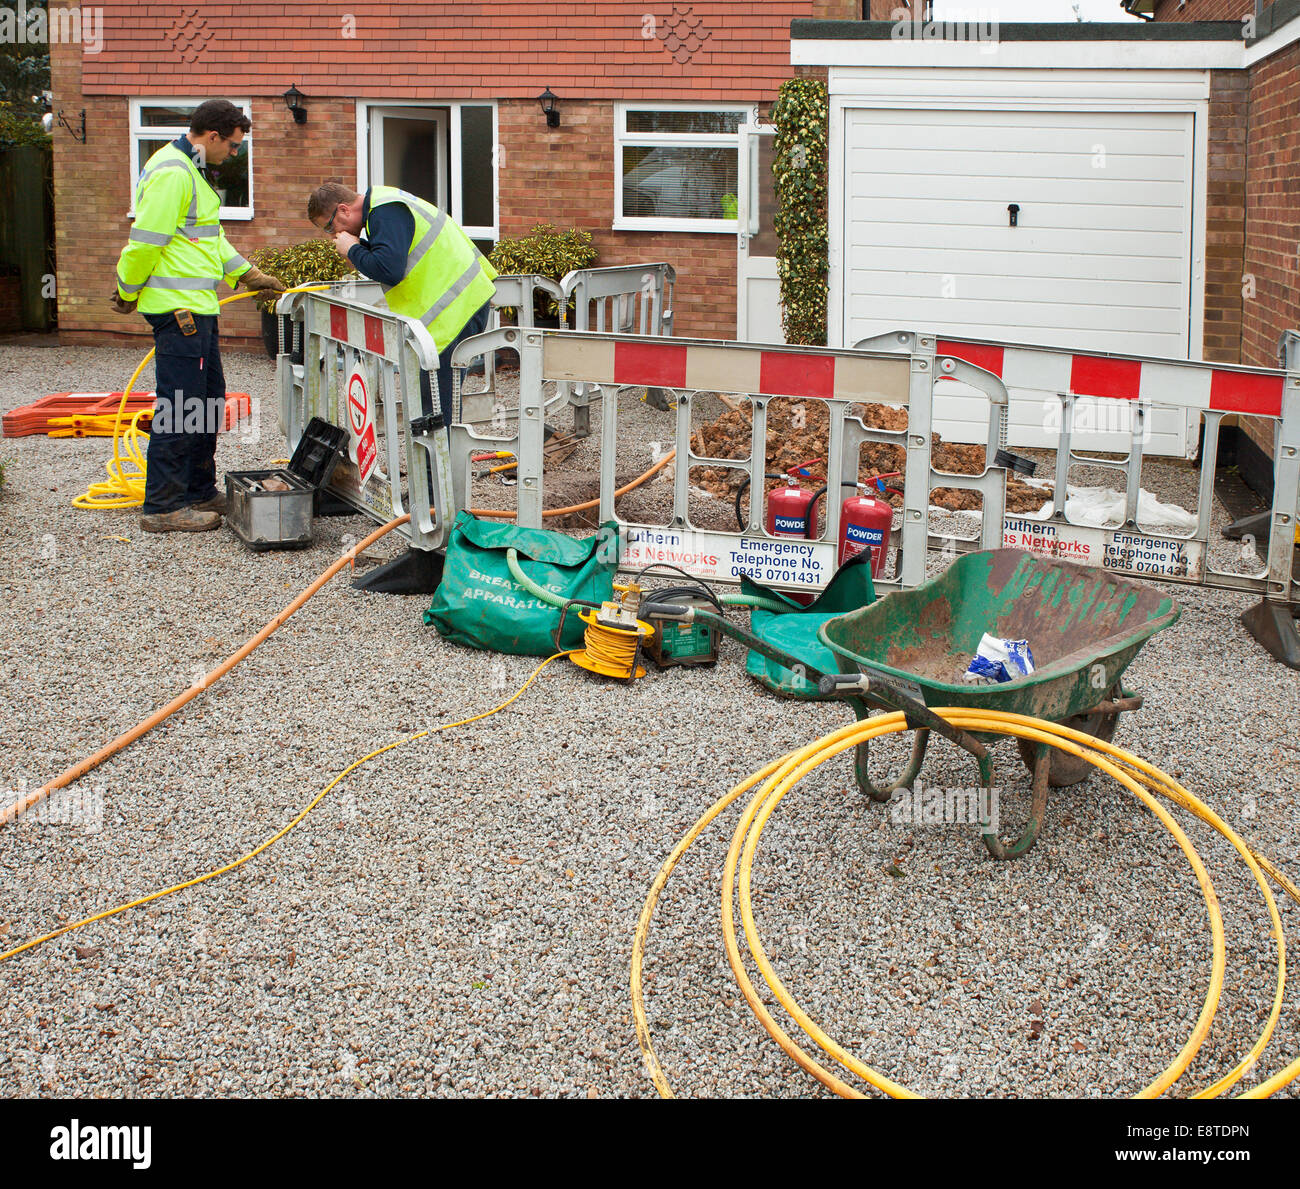 Engineers repairing a domestic gas leak. - Stock Image